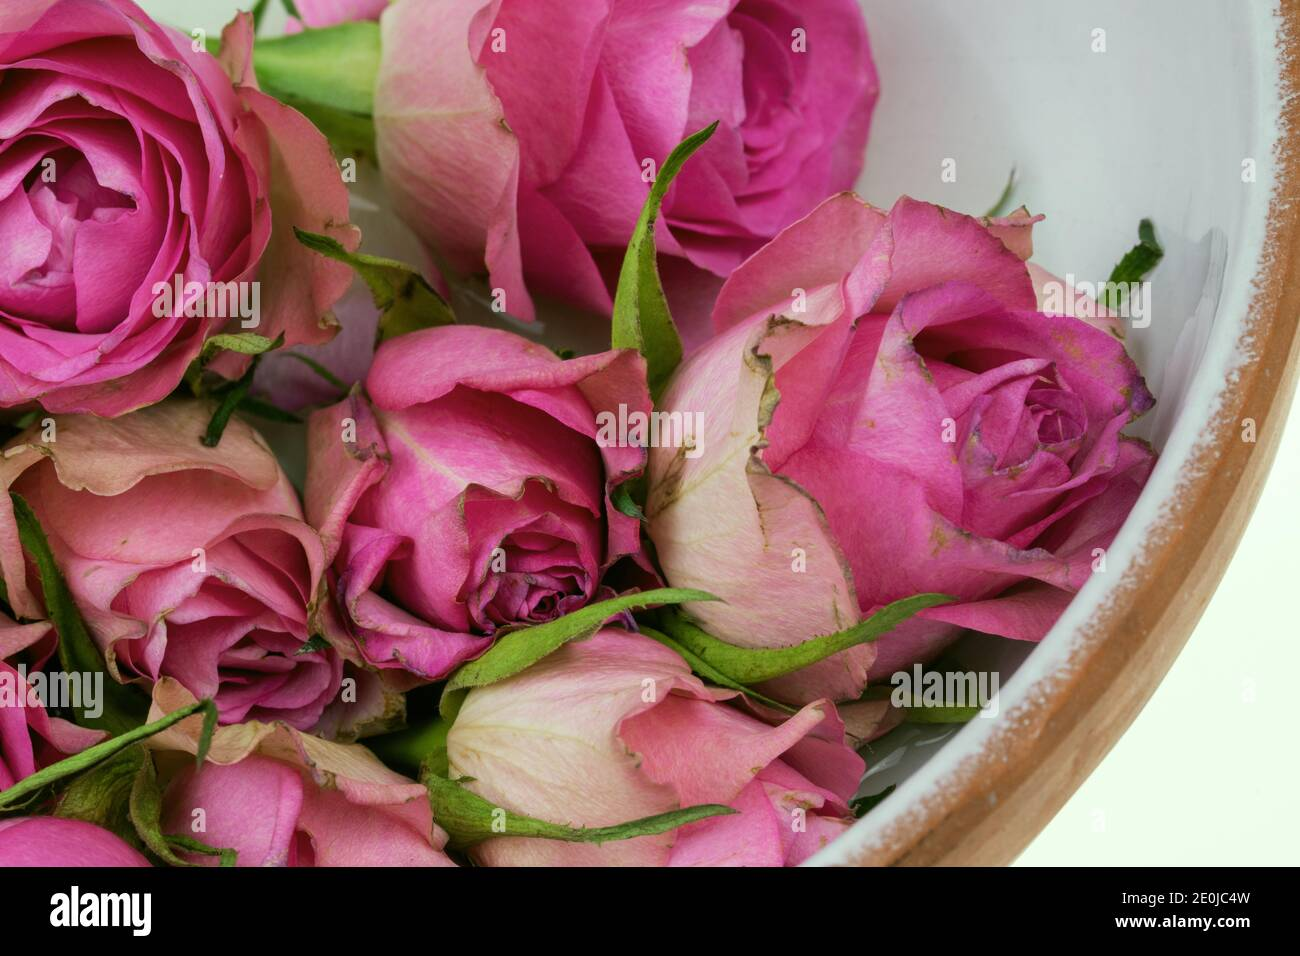 Roses a present for Valentine's Day and also for a birthday. Stock Photo